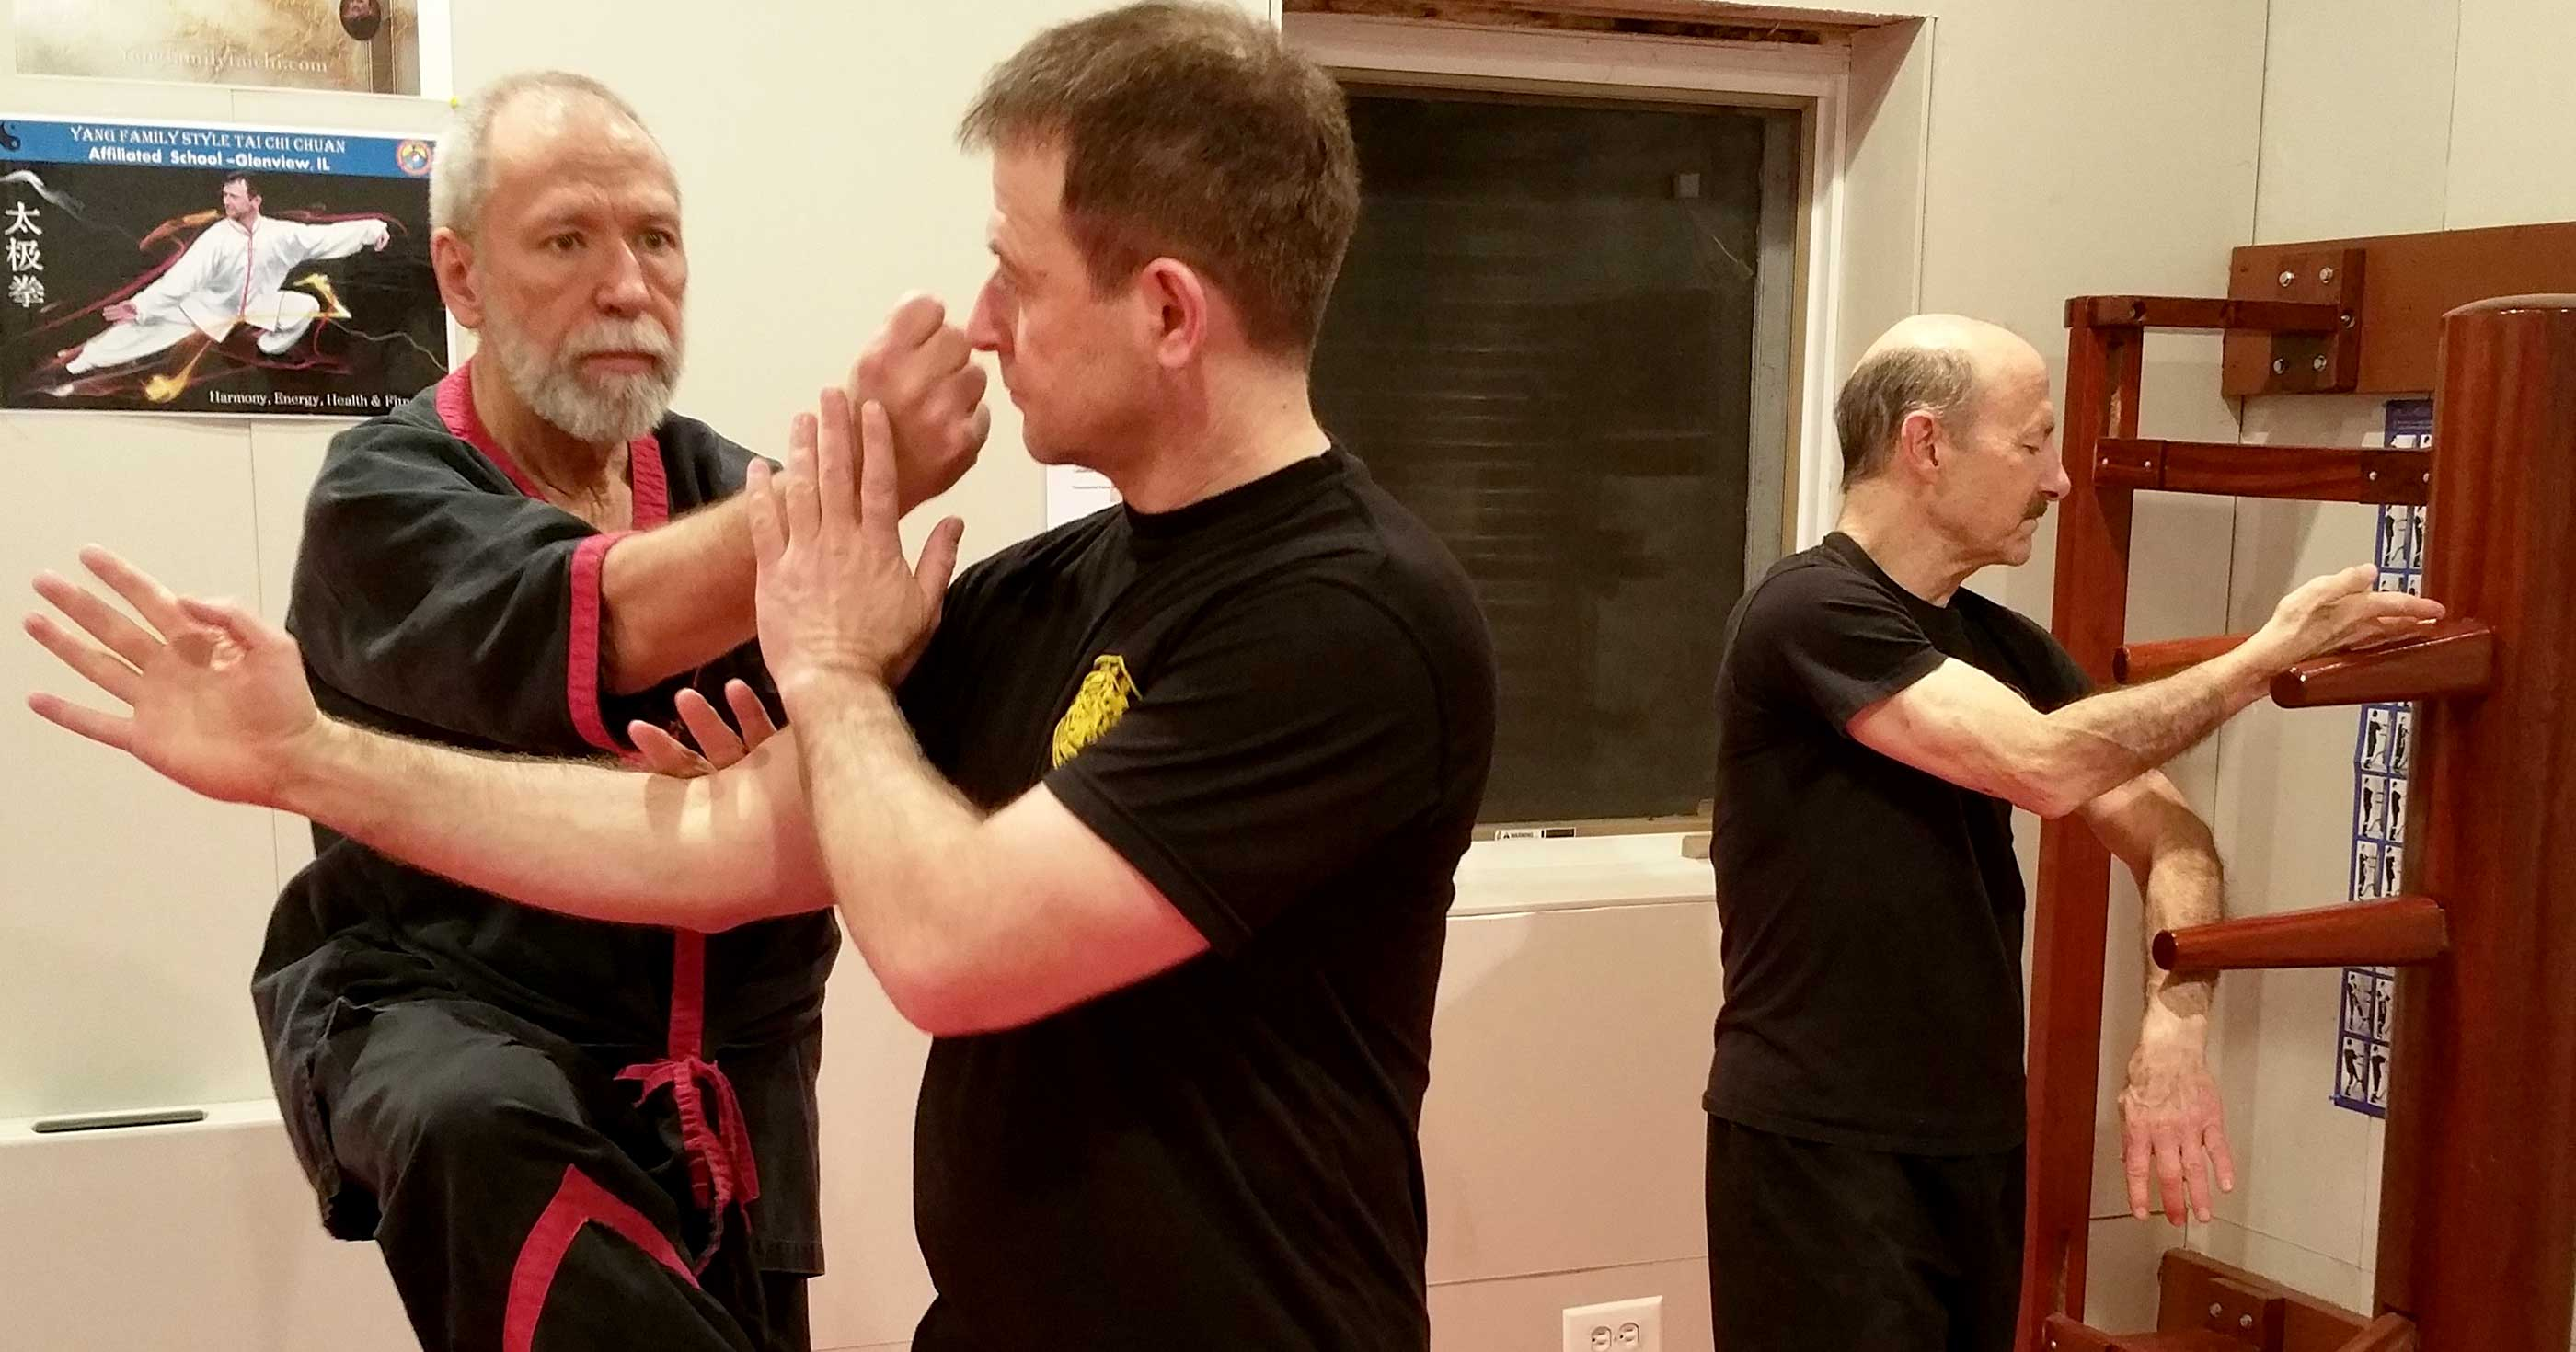 Photo: Master Mike Adams, Sifu Guerman Atanassov, and Sifu Brian Carter training WingTsun at Sifu Atanassov's home kwoon (school).